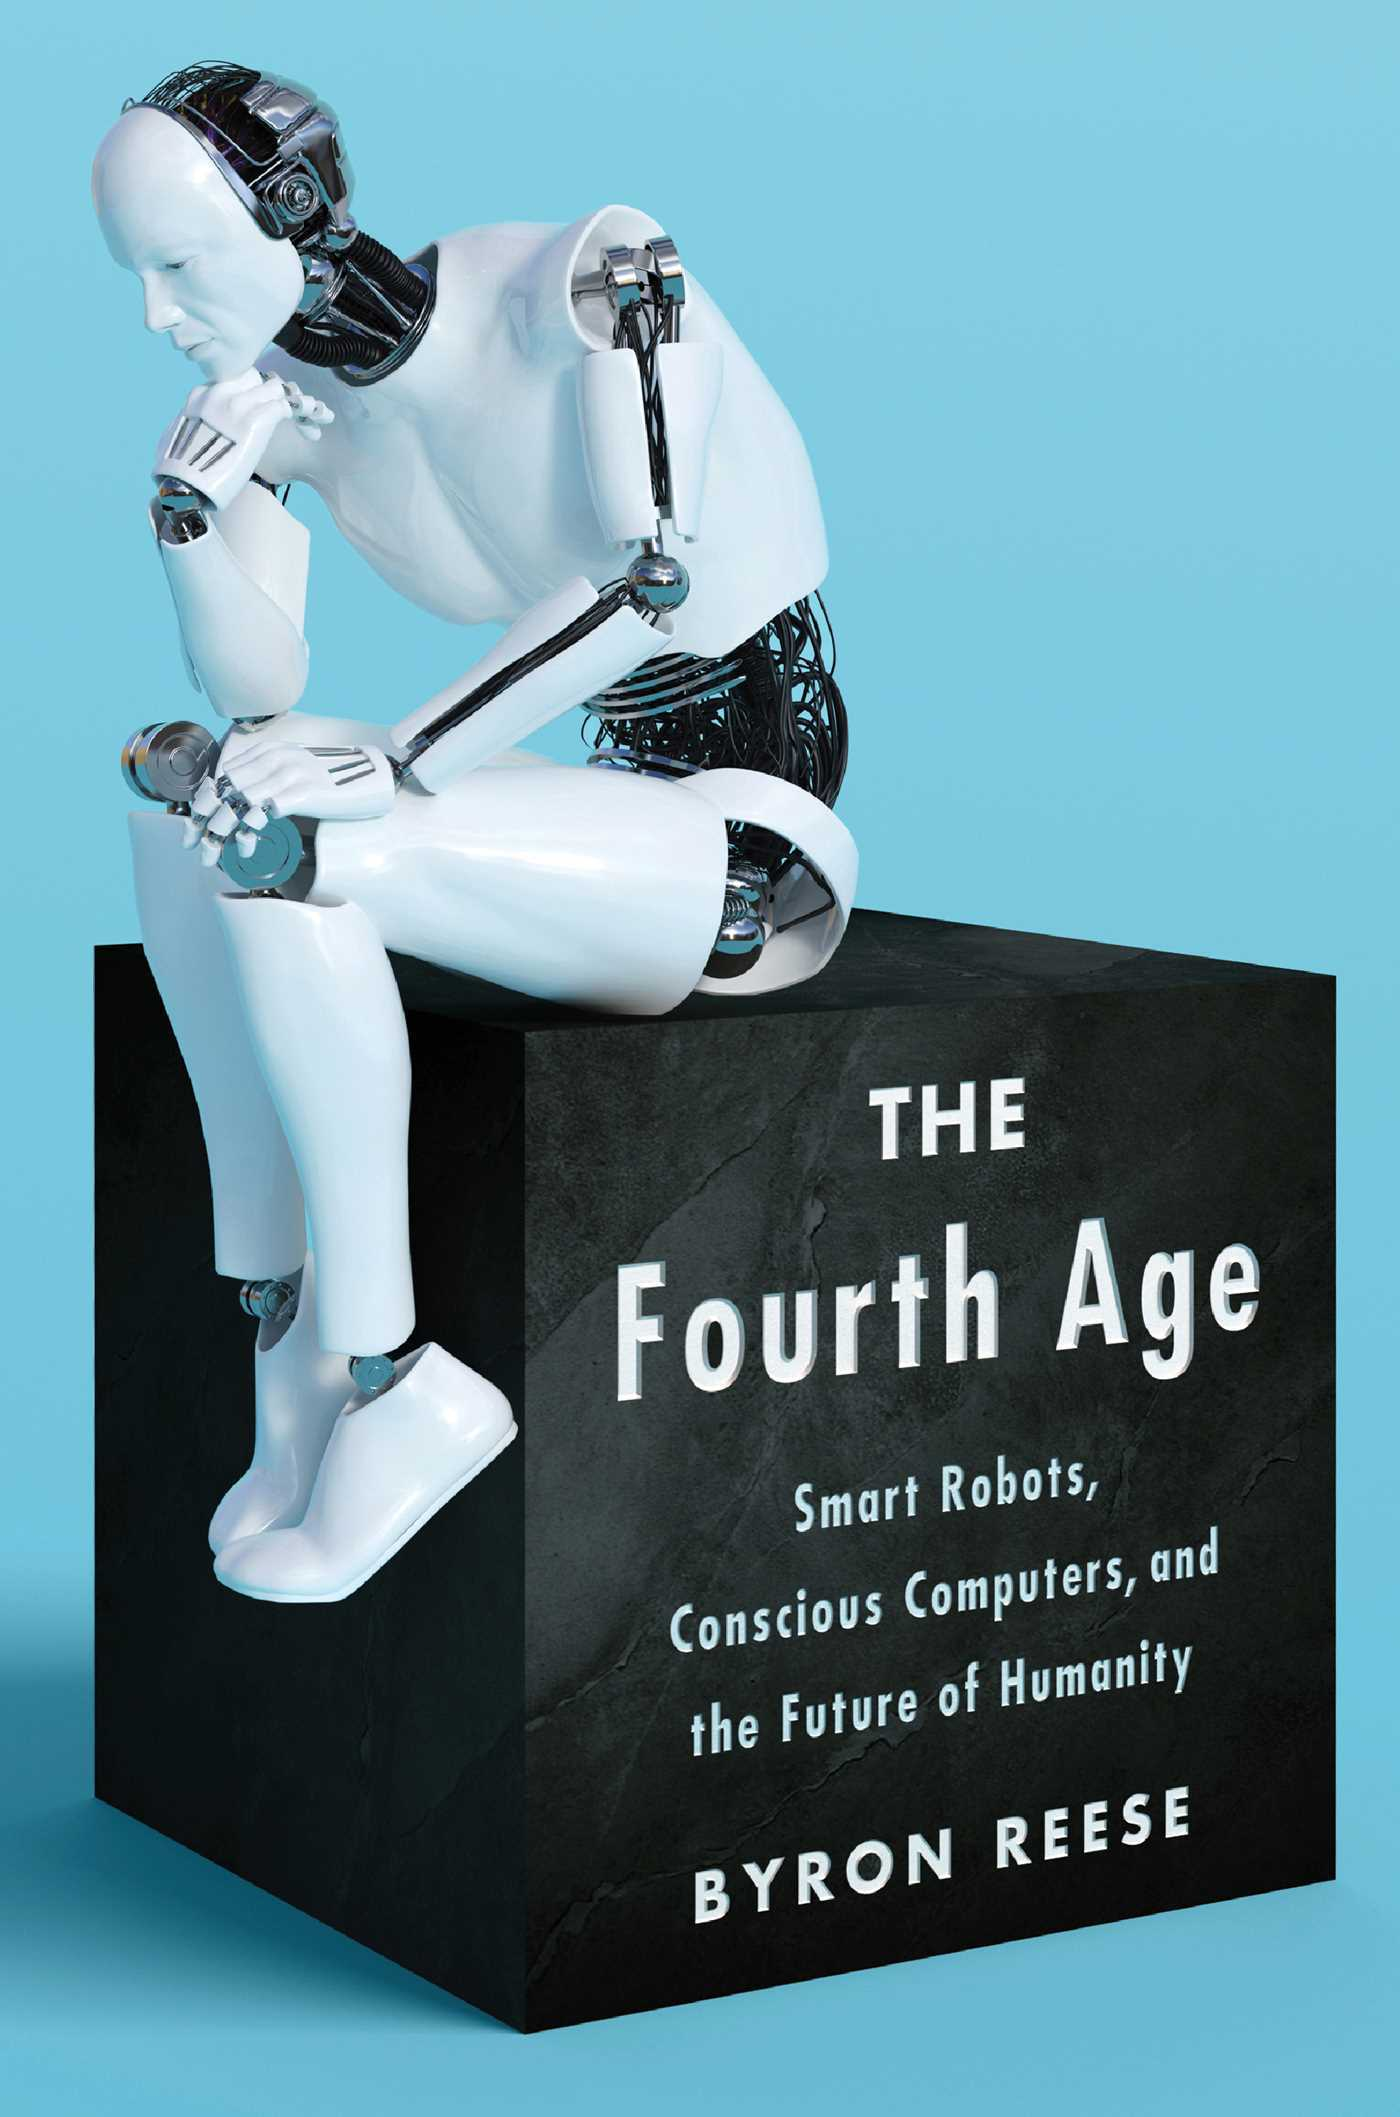 The Fourth Age: Smart Robots, Conscious Computers, and the Future of Humanity